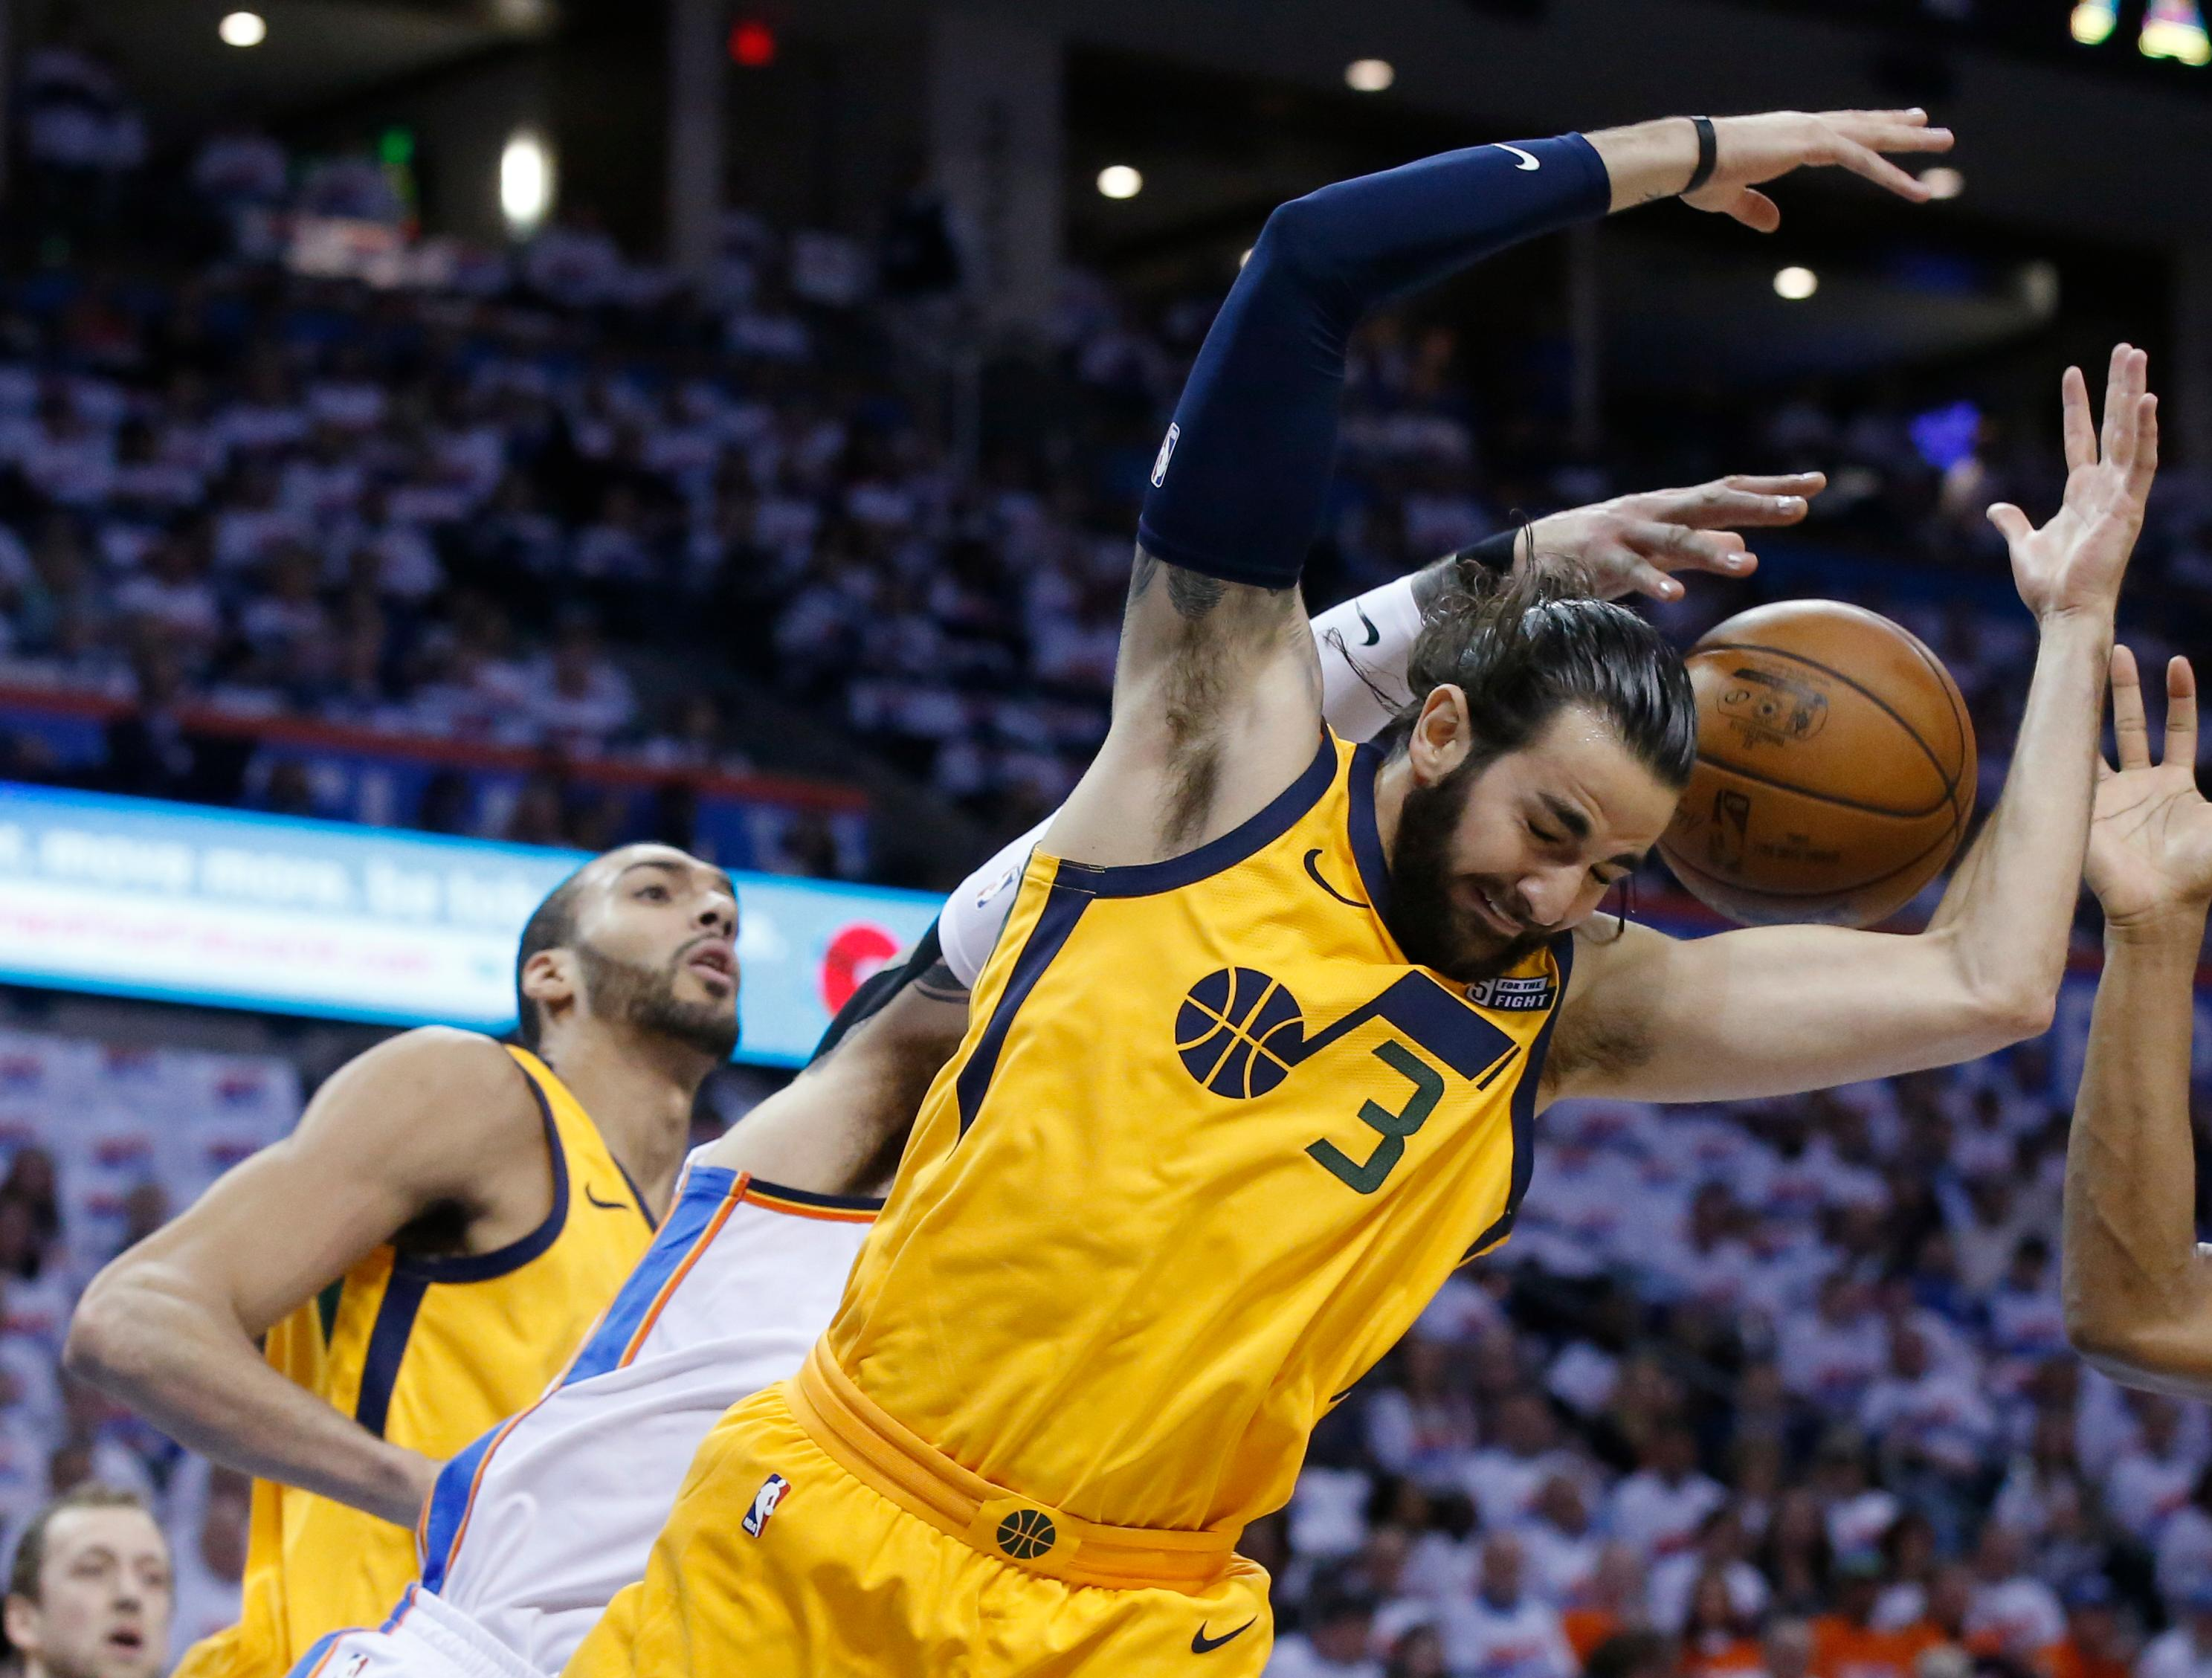 Oklahoma City Thunder center Steven Adams reaches for a rebound behind Utah Jazz guard Ricky Rubio (3) during first half of Game 2 of an NBA basketball first-round playoff series in Oklahoma City, Wednesday, April 18, 2018. (AP Photo/Sue Ogrocki)